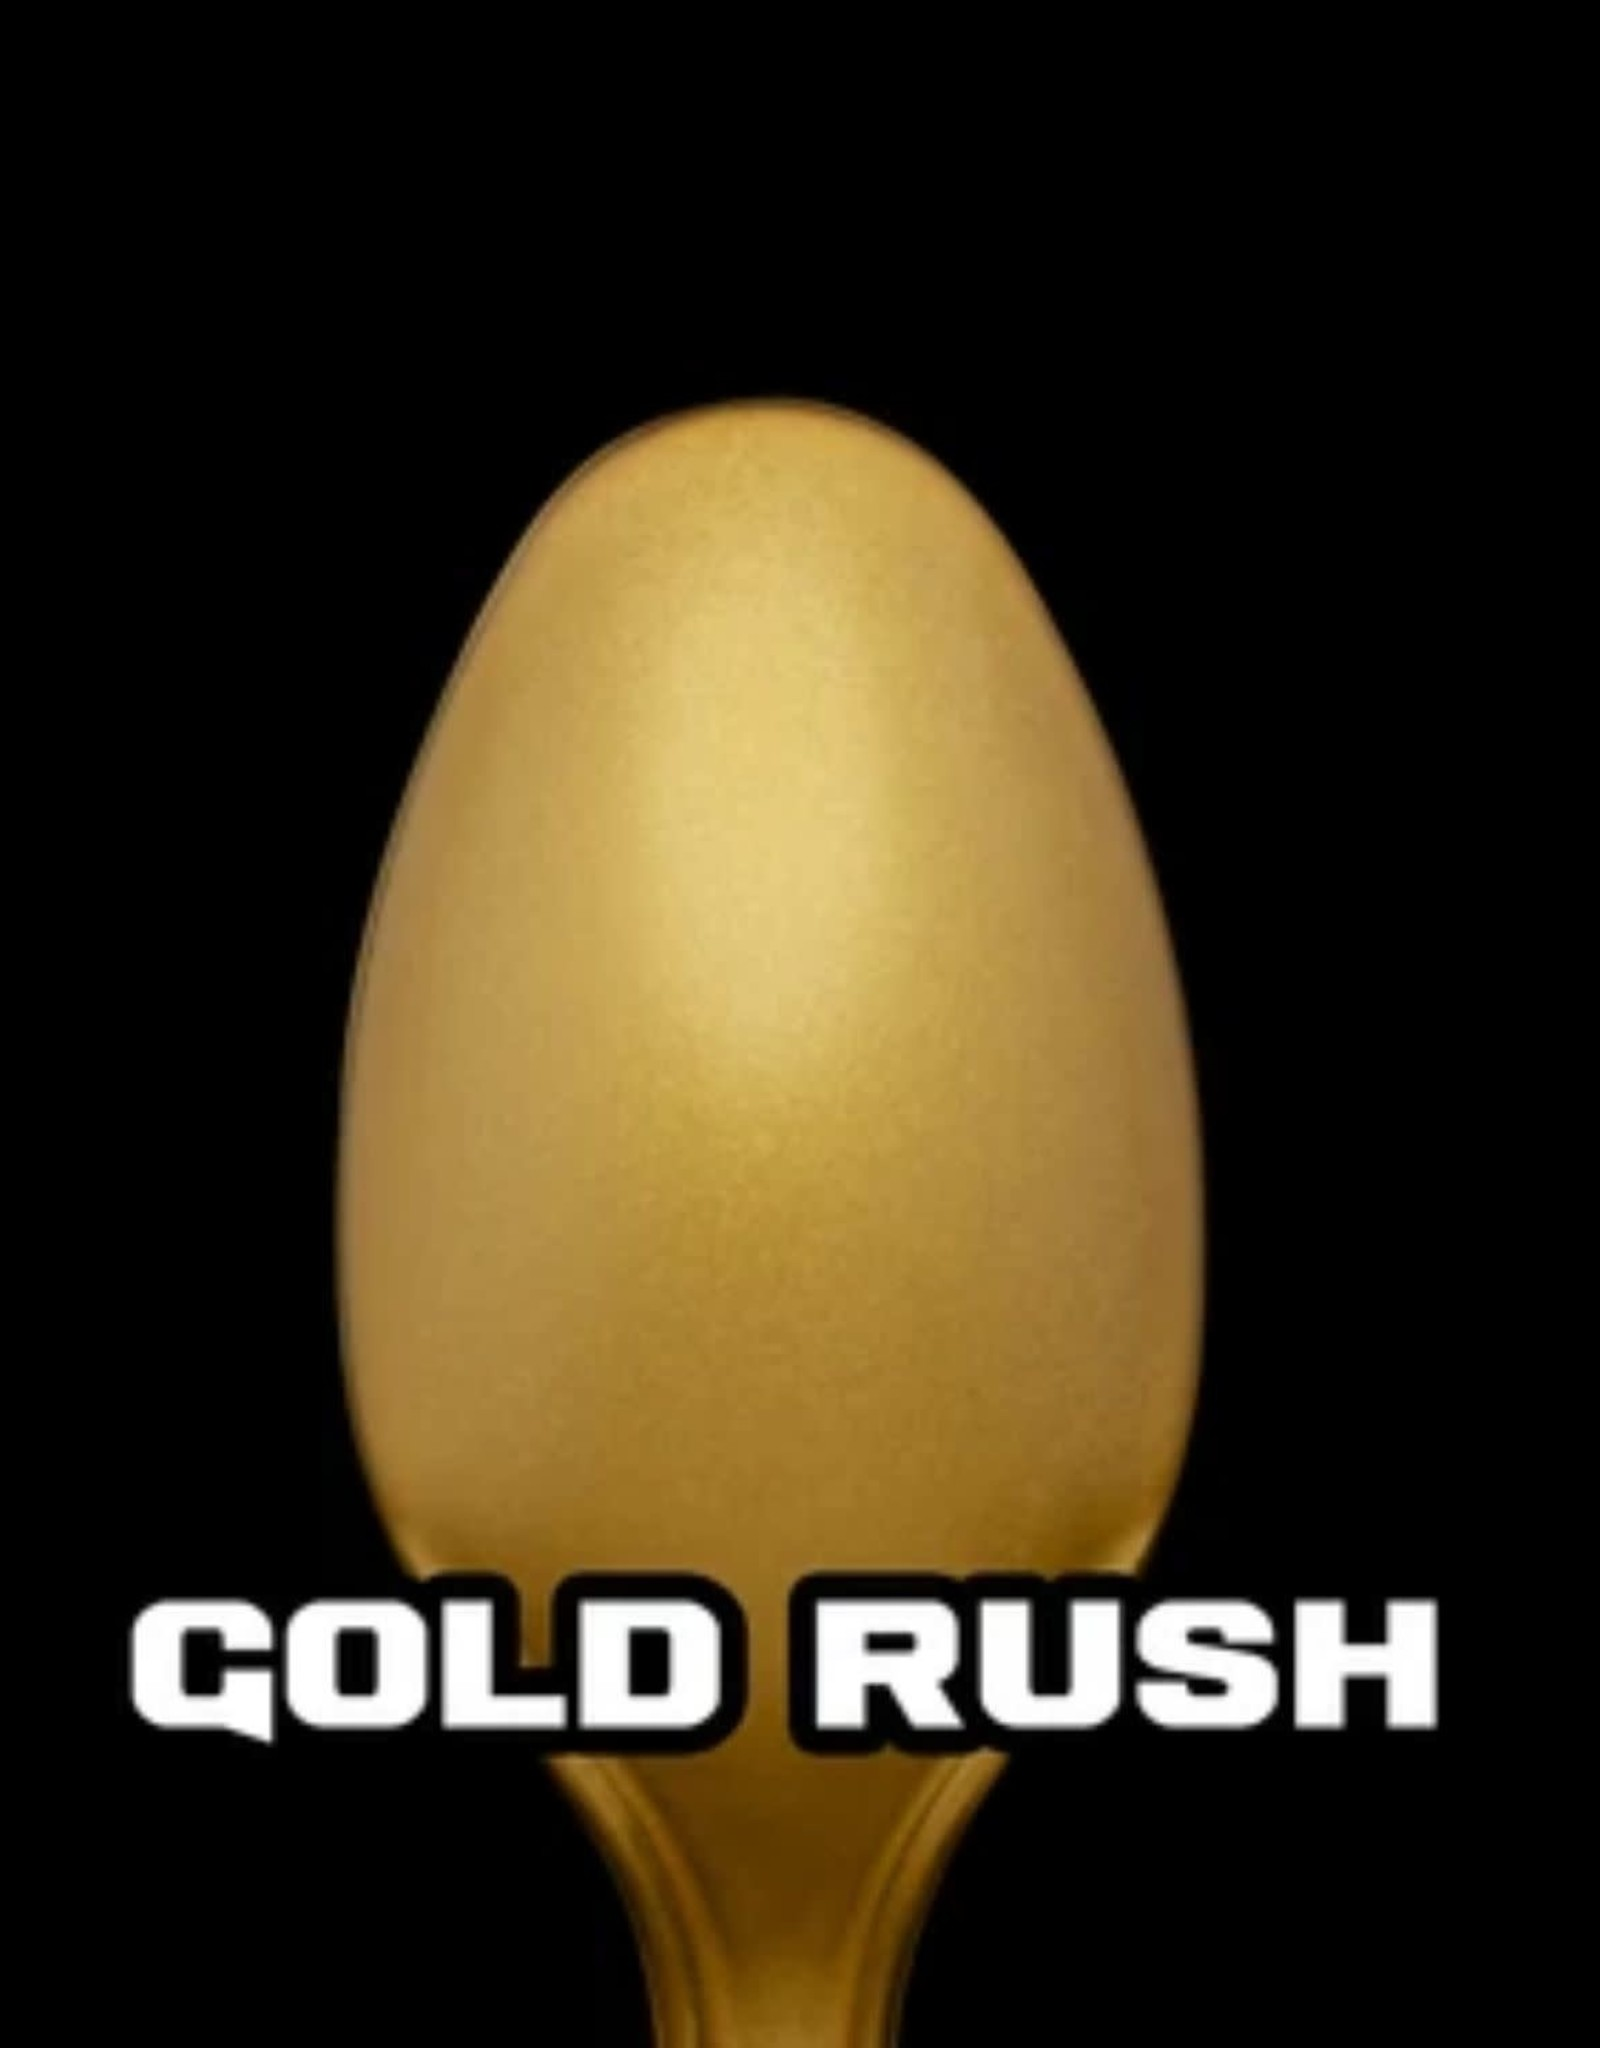 Turbo Dork Gold Rush - Metallic